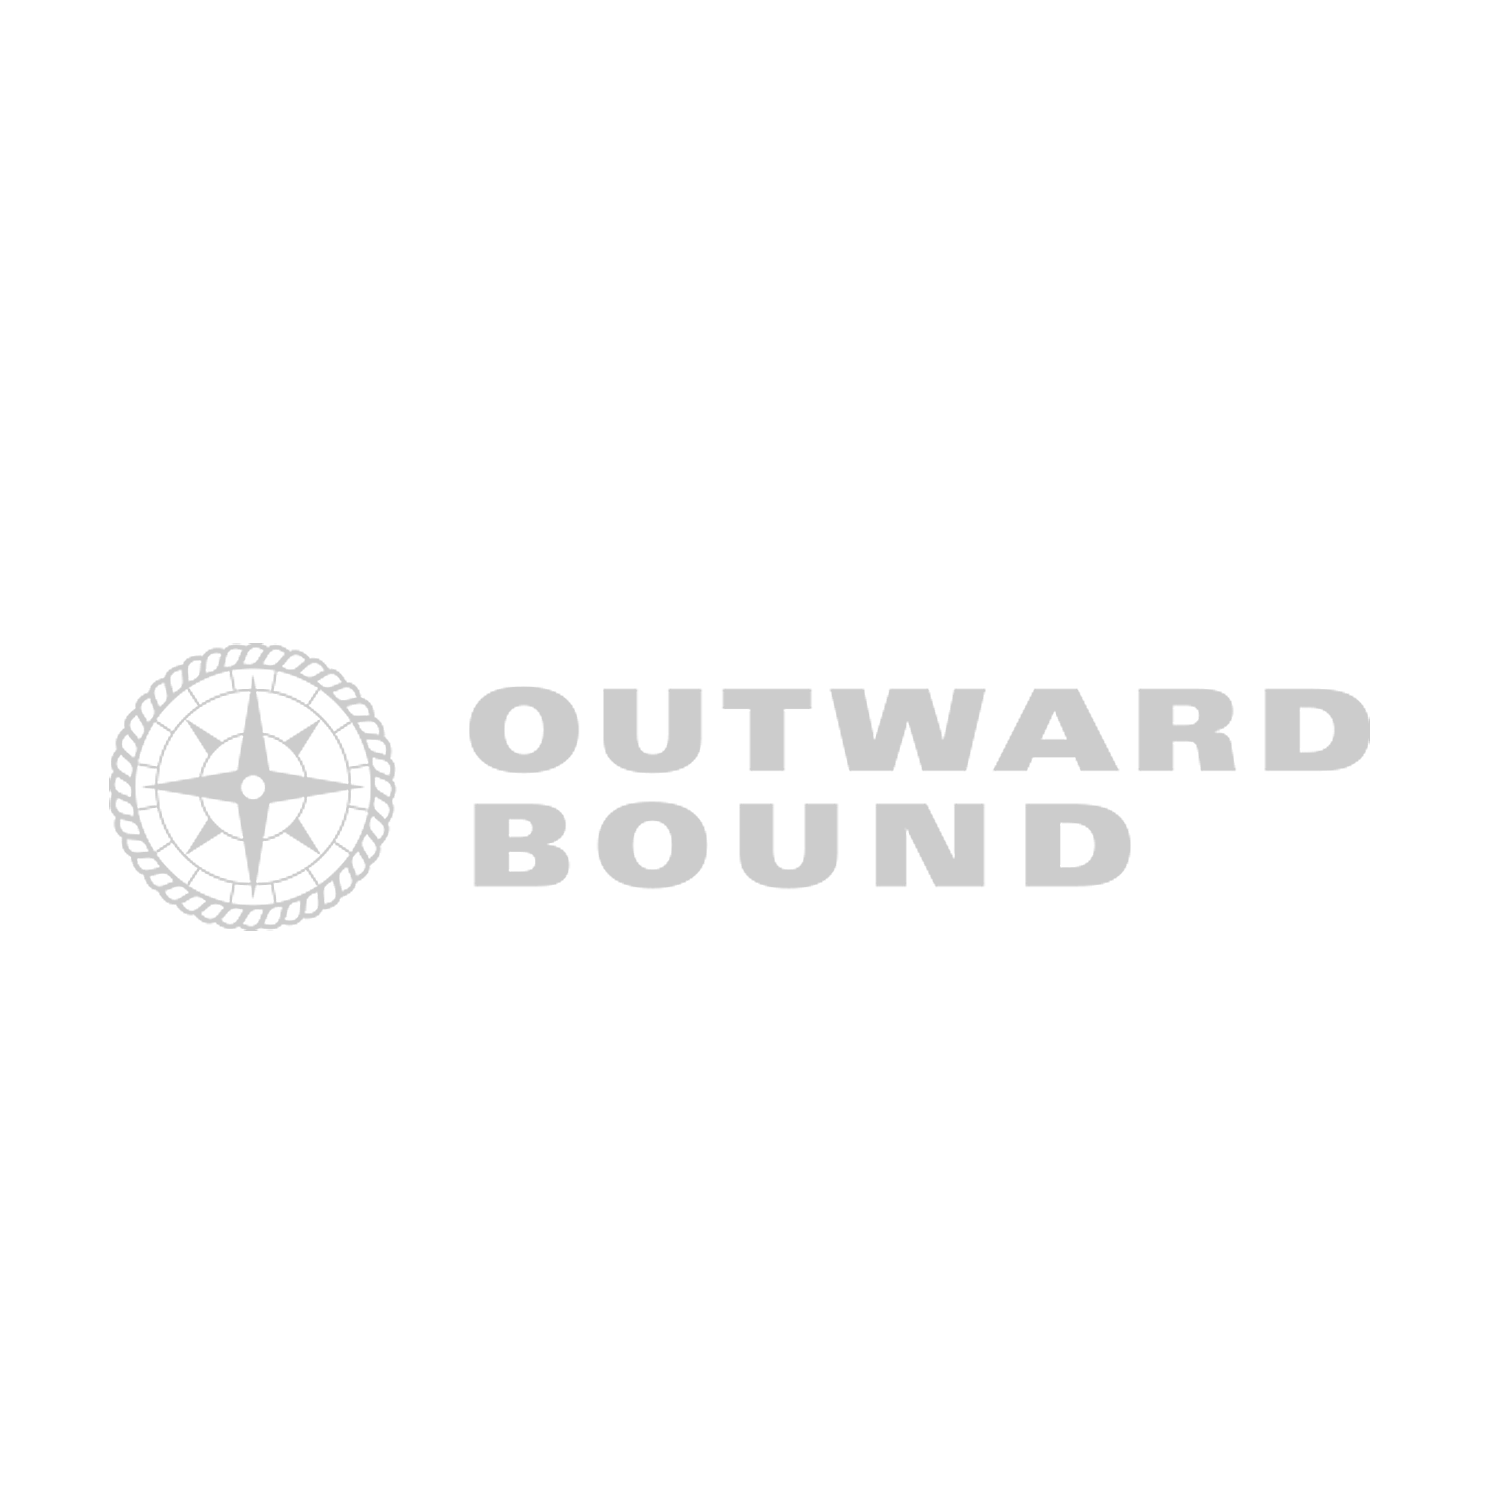 OUTWARD BOUND.png